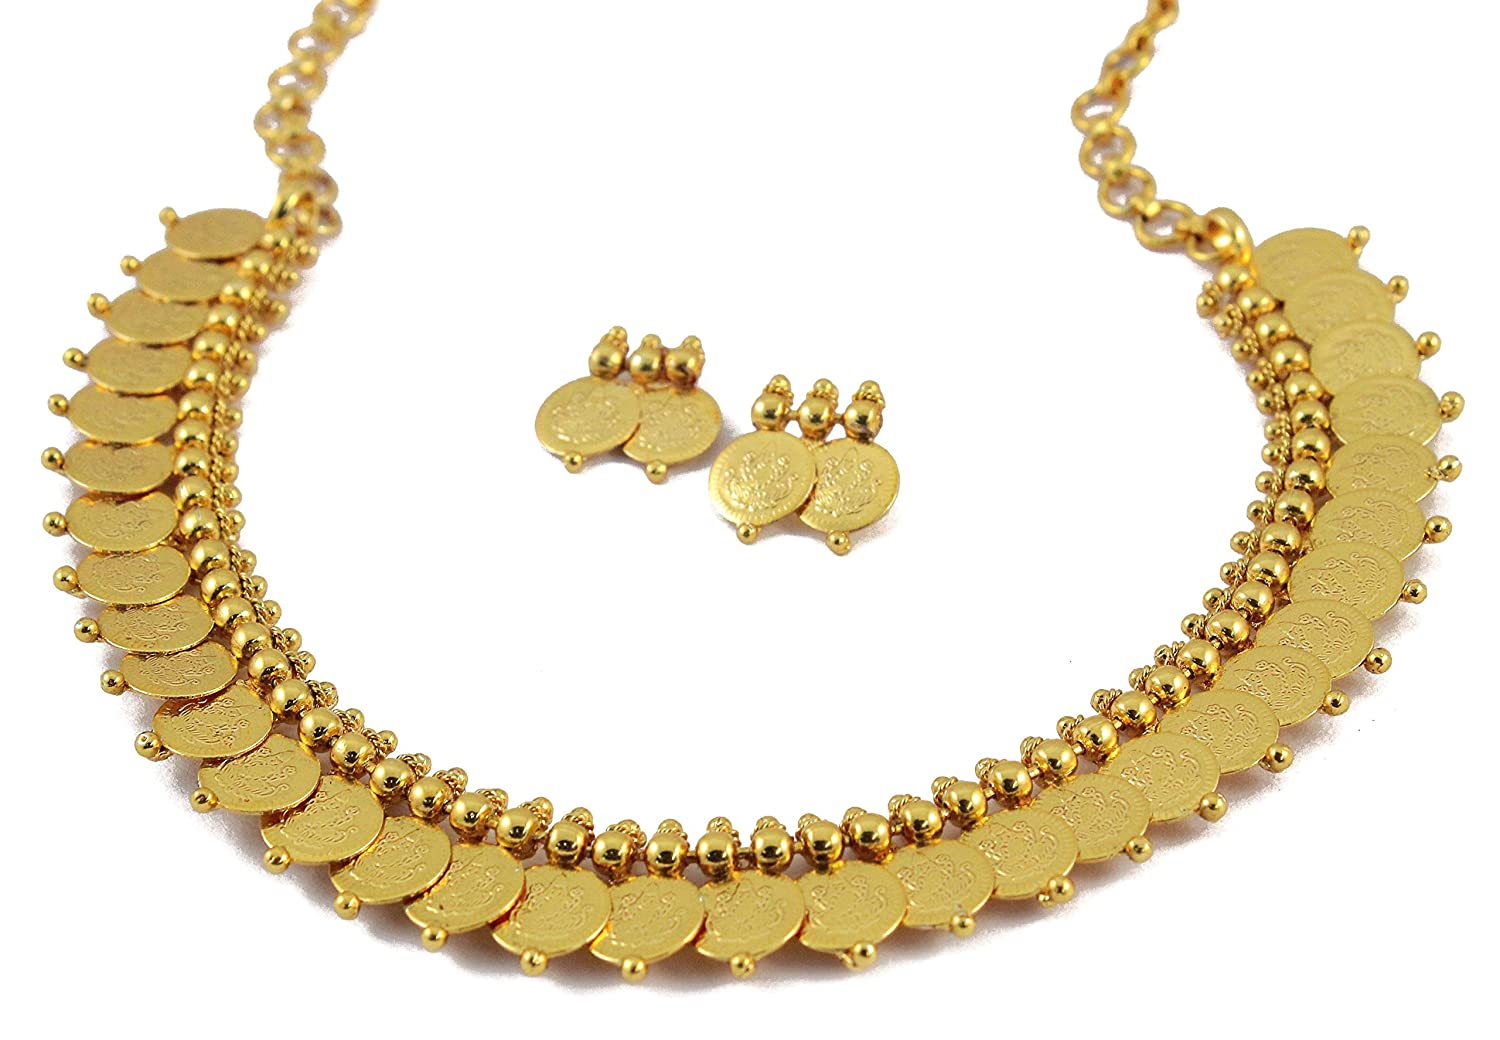 necklace sets jewelry india gold golden suppliers set forming jewellery manufacturers products bridal exporters mumbai